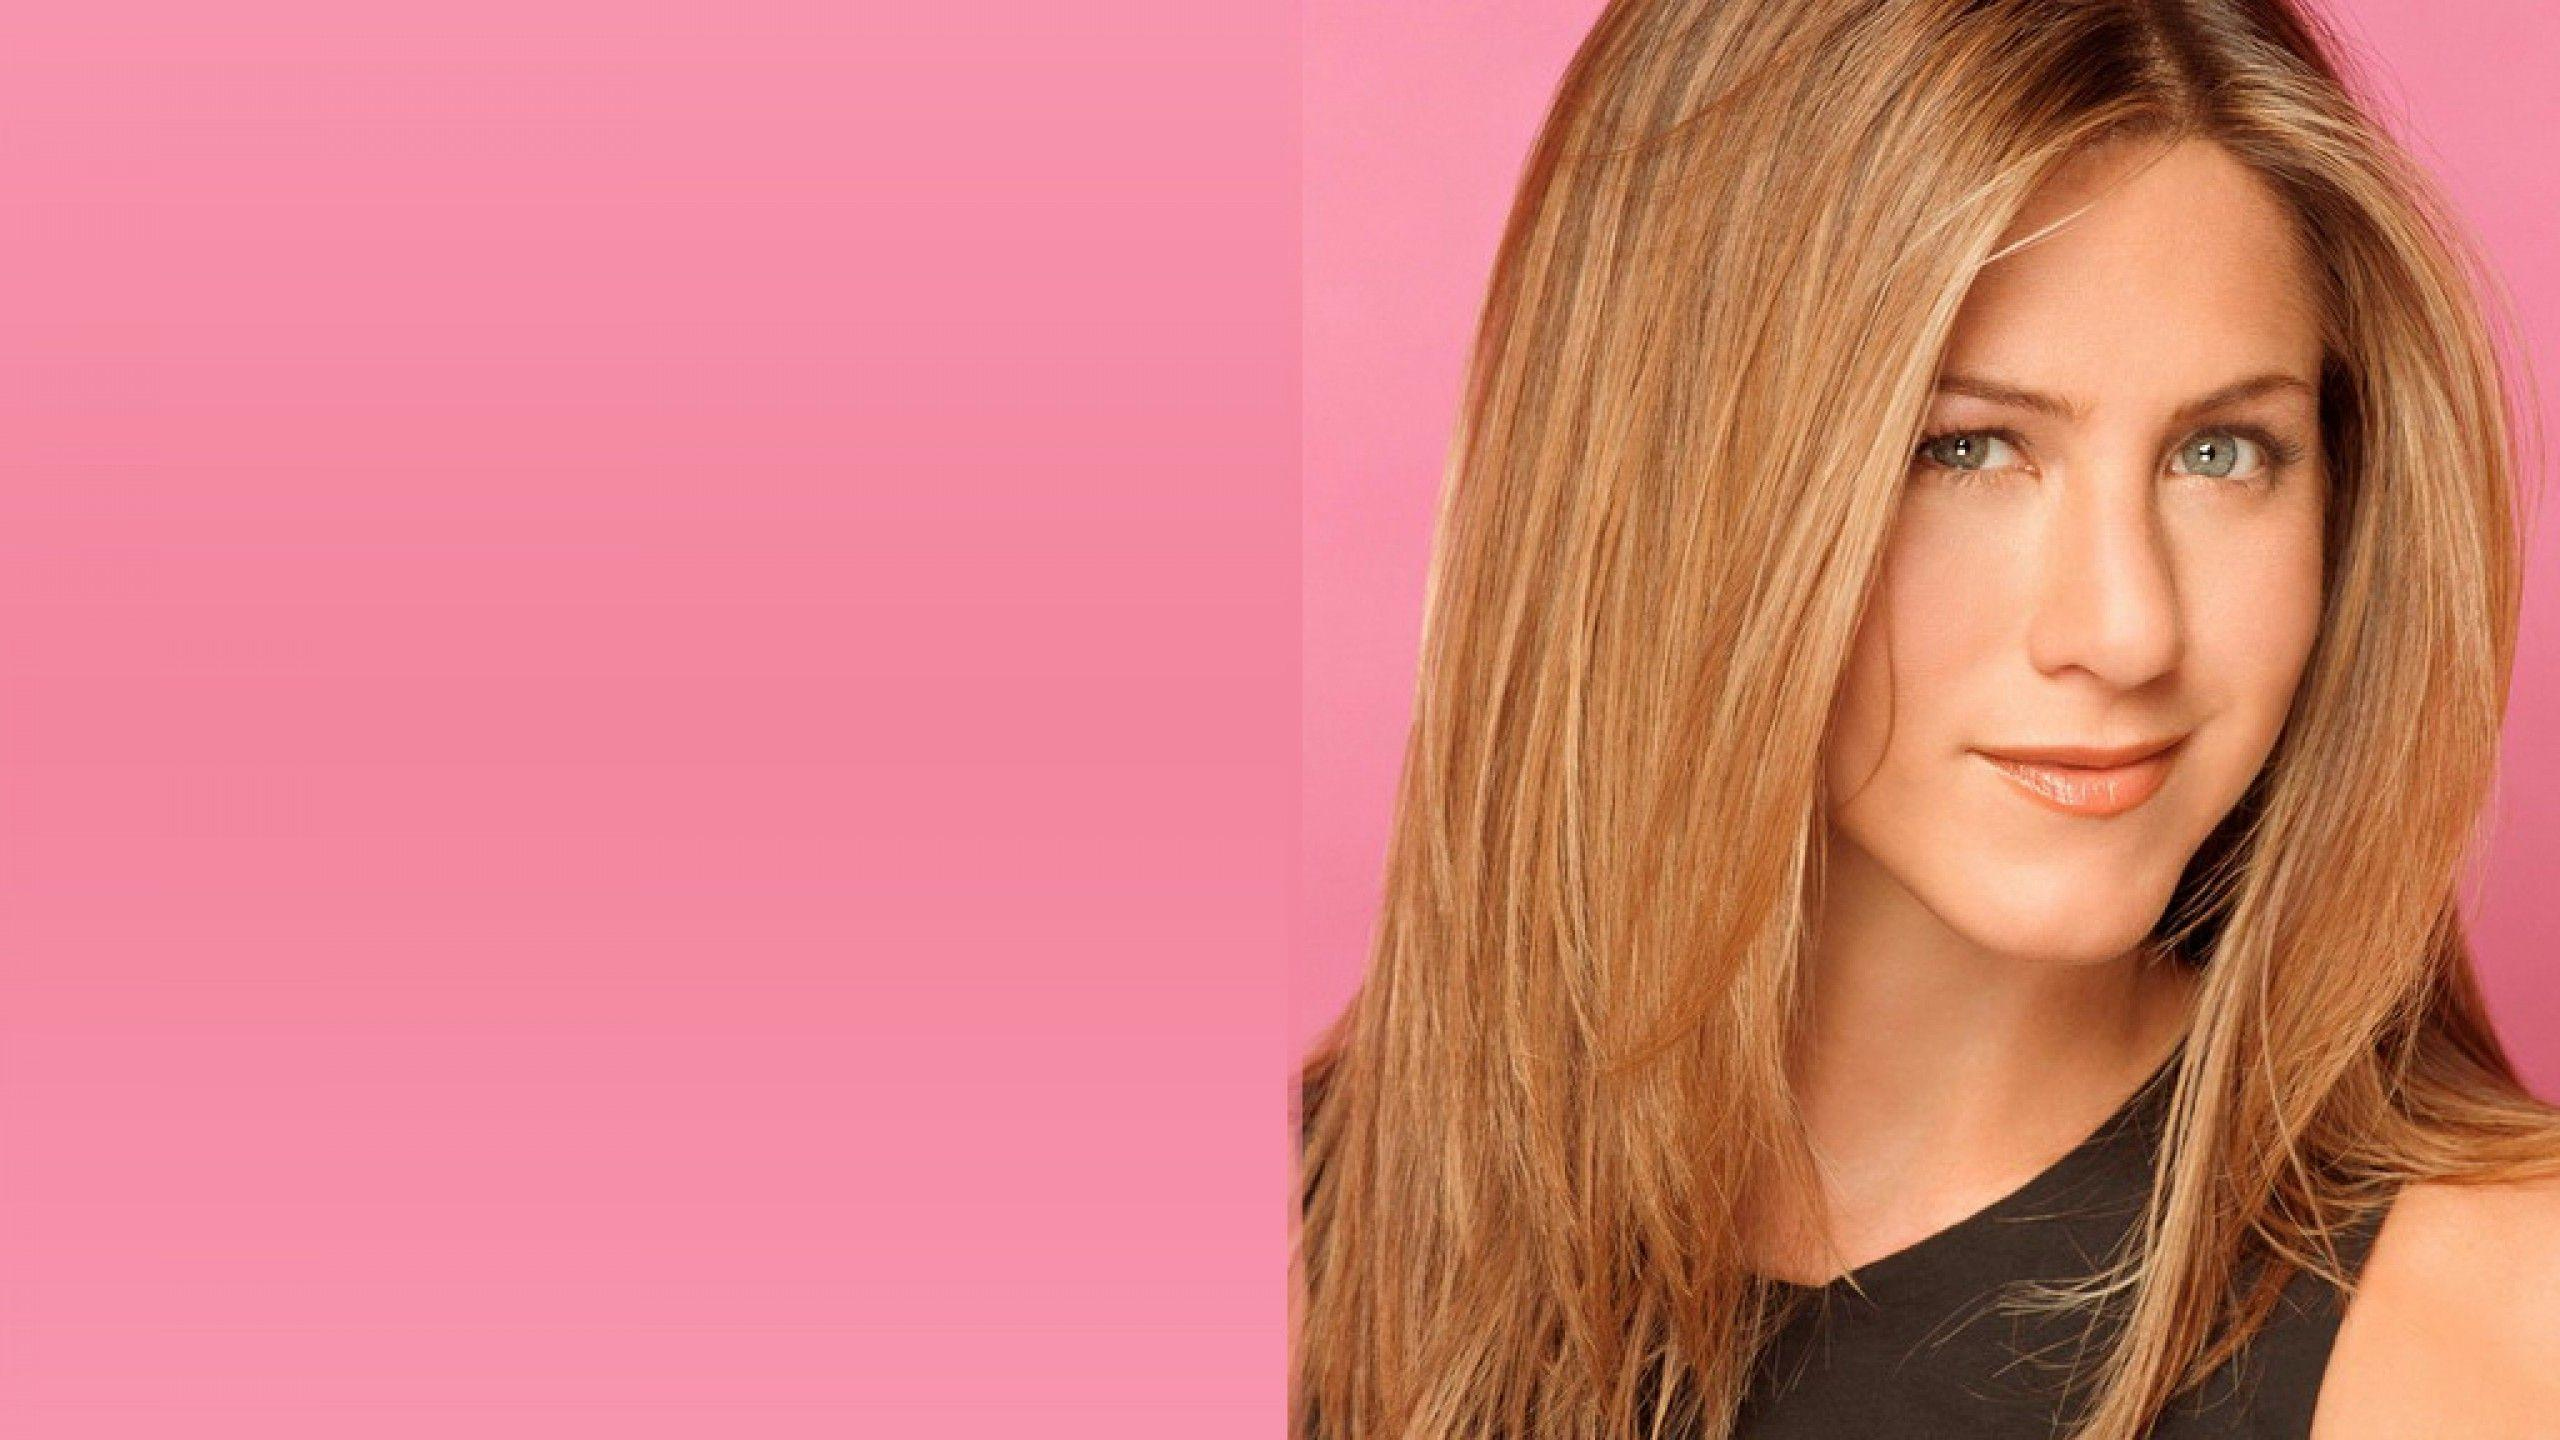 jennifer aniston wallpapers wallpaper cave